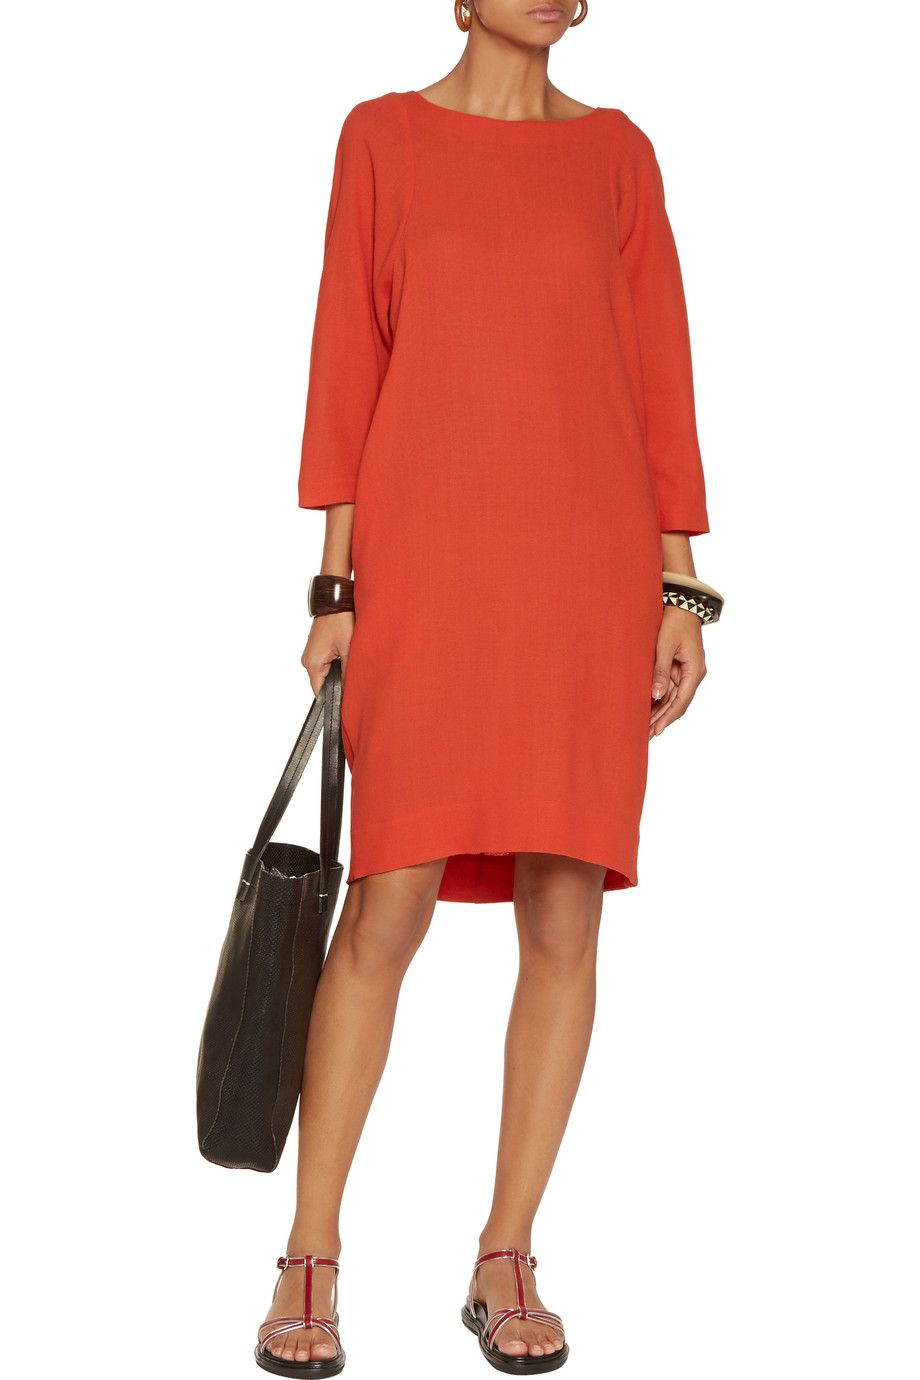 $404 - Marni Wool-crepe dress. Browse other discount designer Dresses & more on The Most Fashionable Fashion Outlet, THE OUTNET.COM